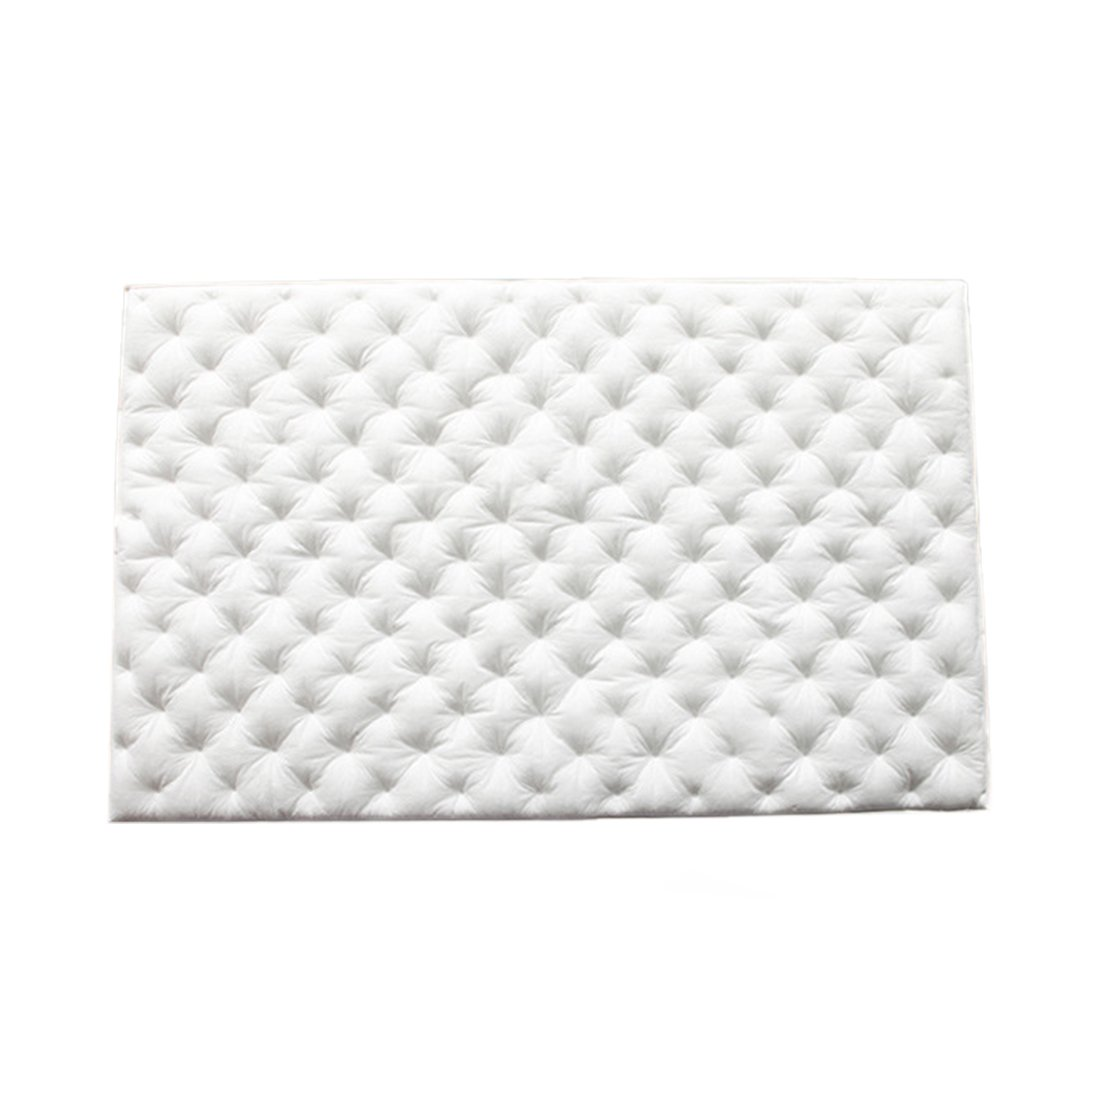 uxcell 50cmx80cm Car Audio Stereo Sound Acoustic Noise Absorbing Dampening Foam 19.7''x31.5''